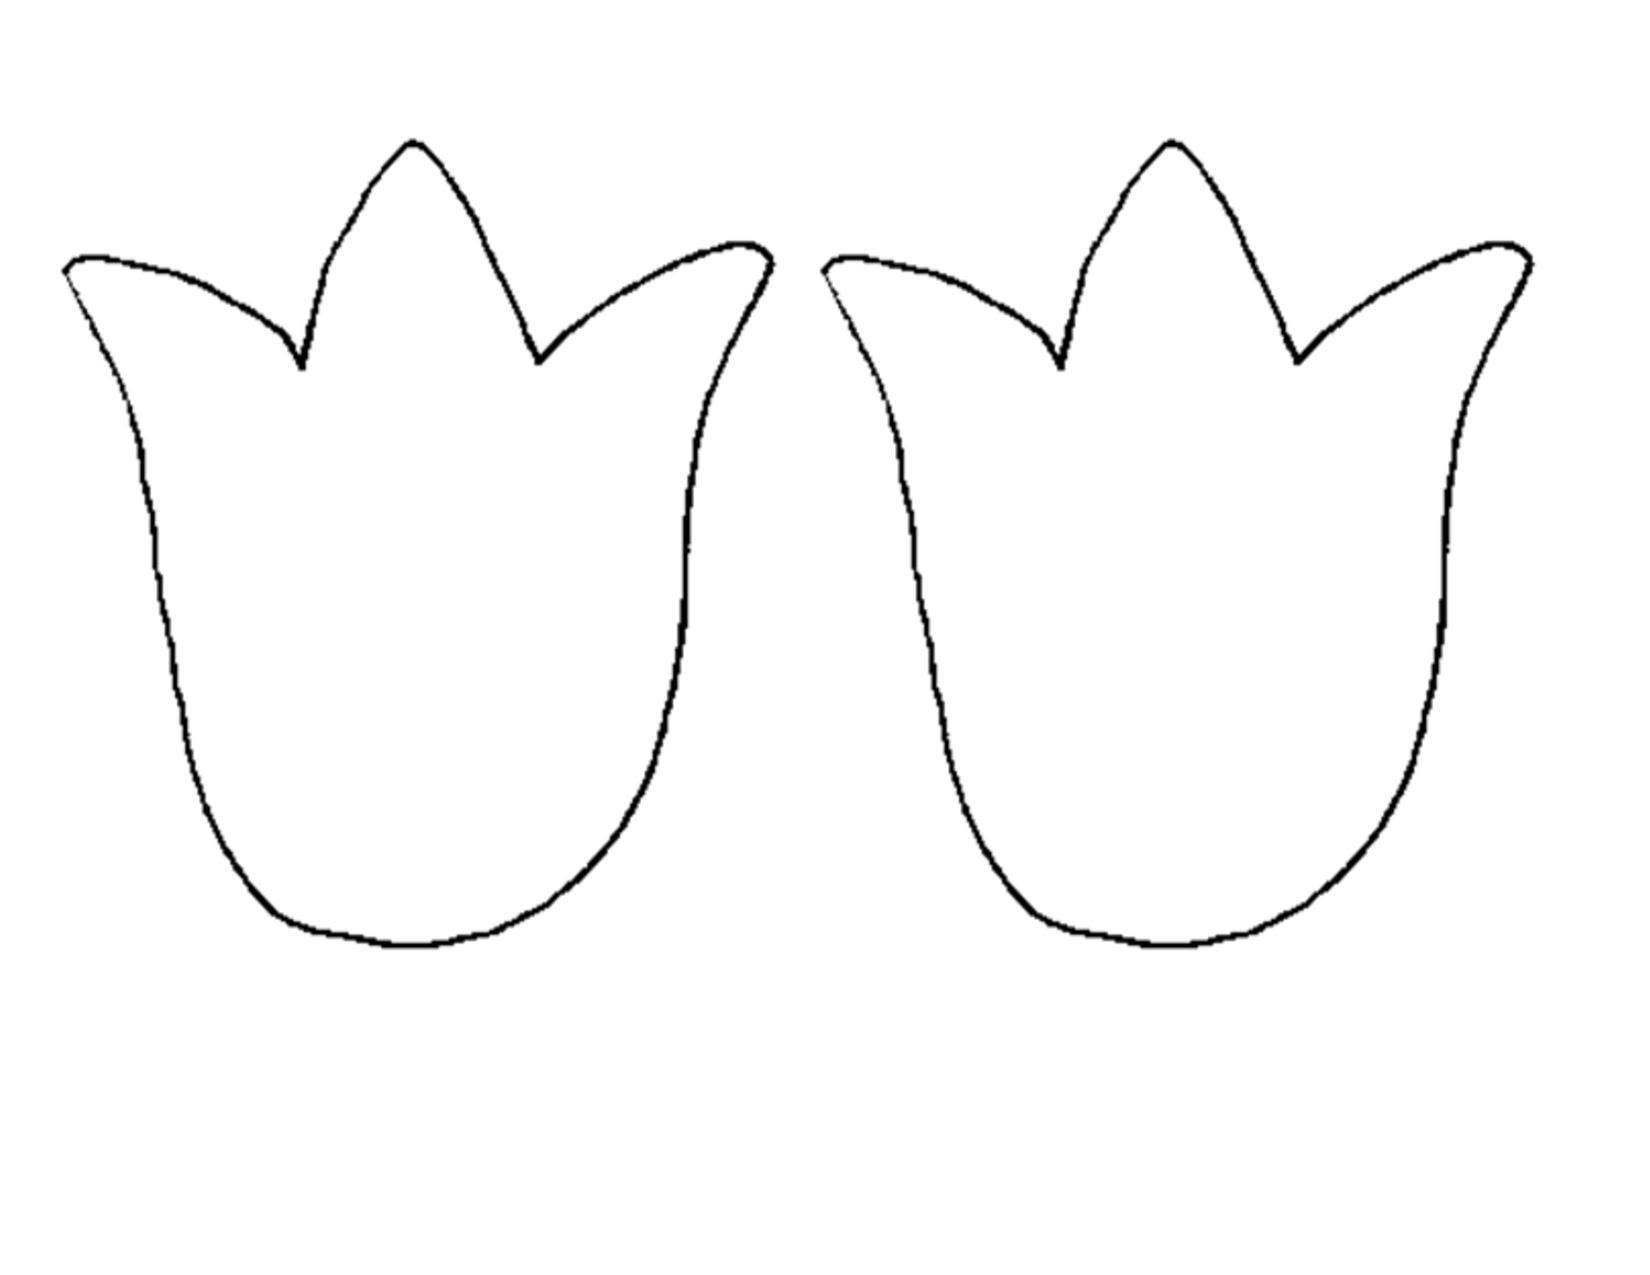 Tulip template yahoo image search results preschool for Preschool flower crafts templates